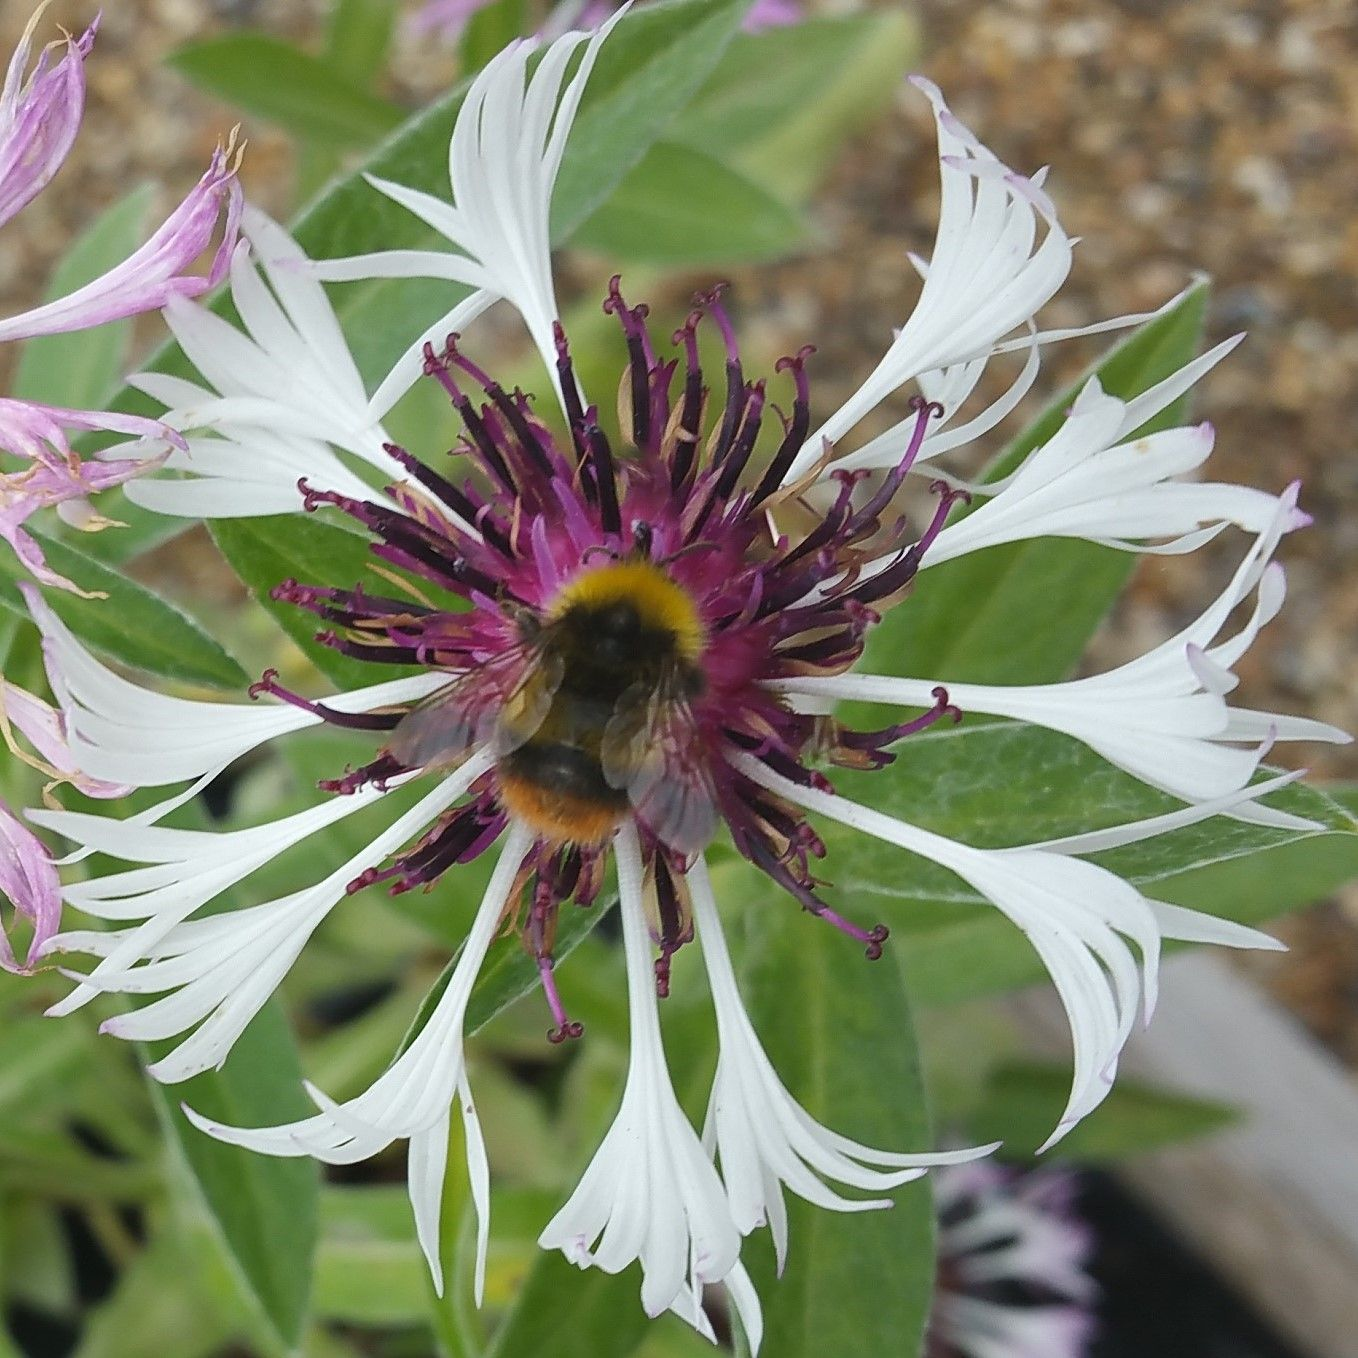 Stocking a wide range of garden plants throughout the year